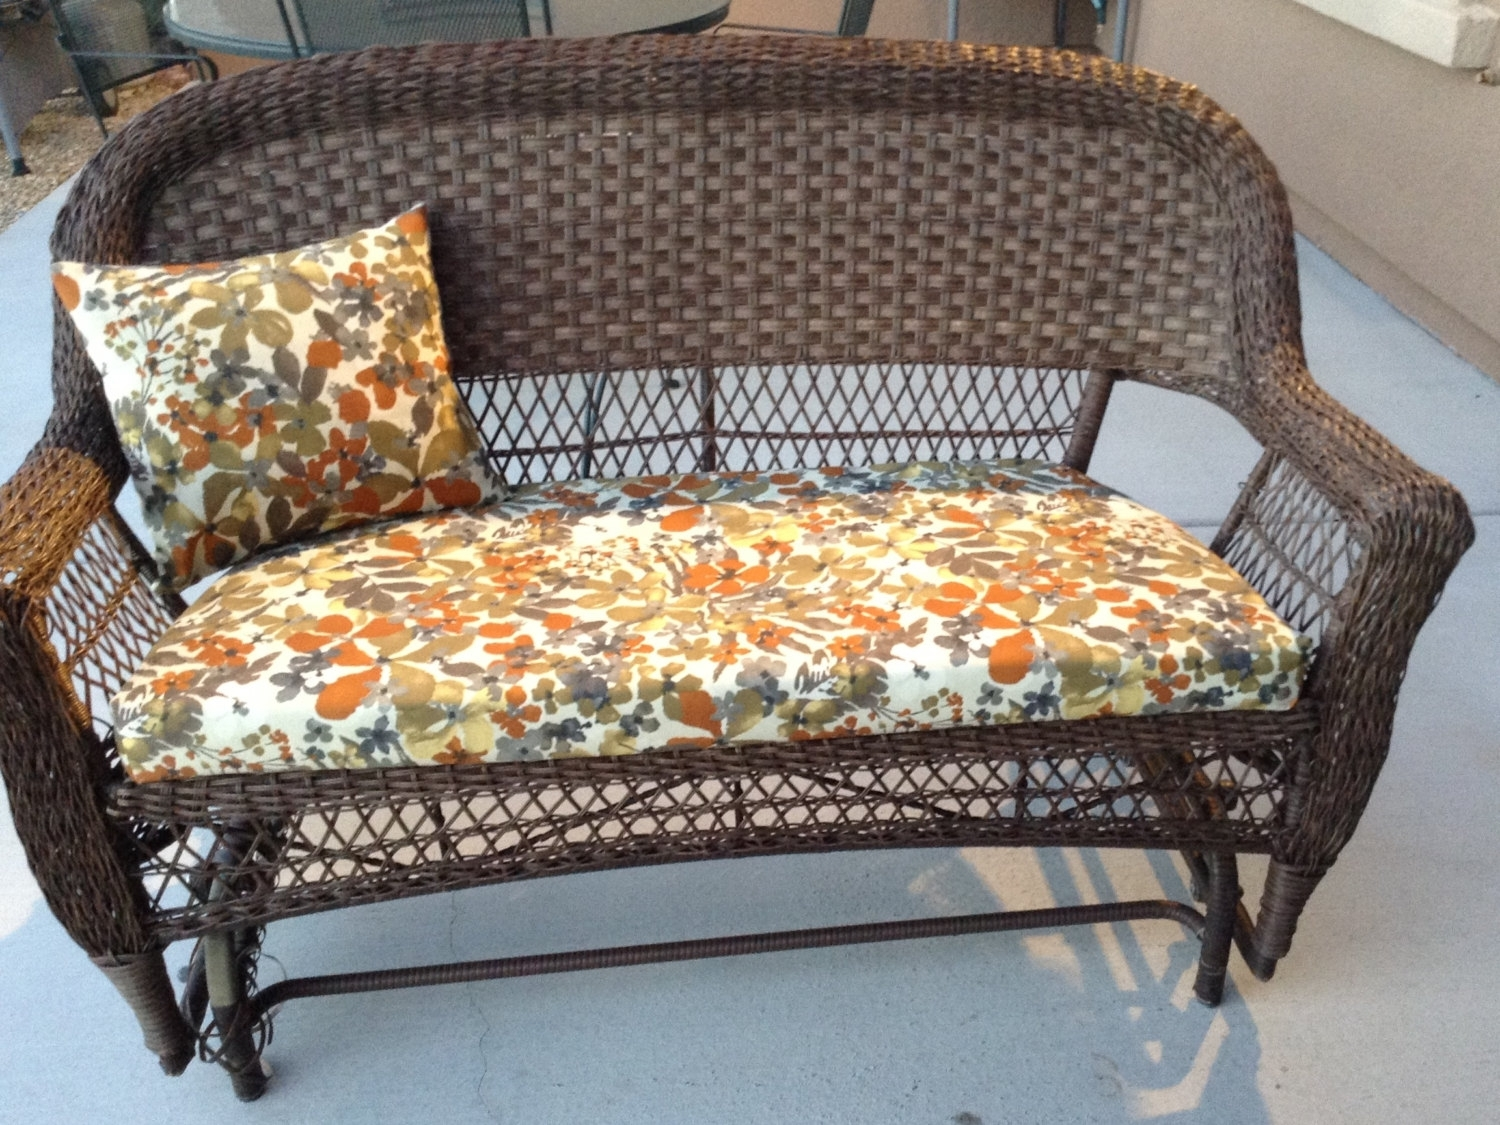 Image of: Patio Furniture Chair Cushions Wicker Chair Cushion Floral Pattern Regarding Outdoor Wicker Seat Cushions Very Elegant Outdoor Wicker Seat Cushions